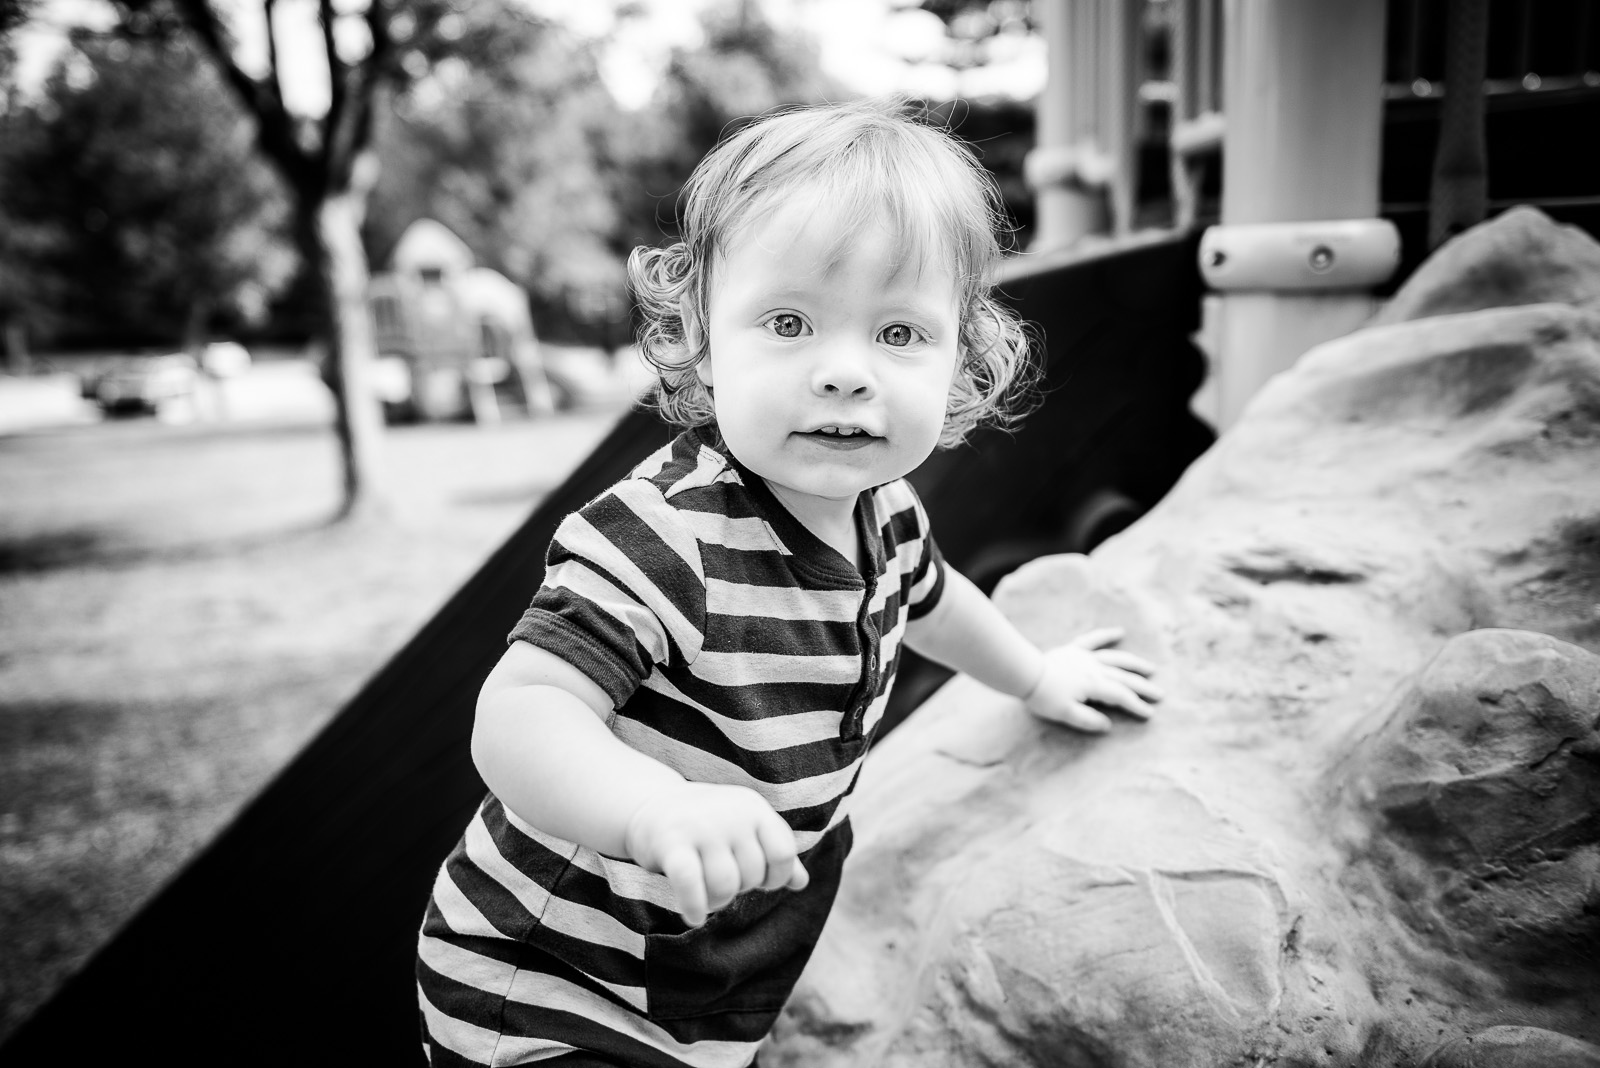 Eric_and_Christy_Photography_Blog_Patricia_Jason_Munchkins-17